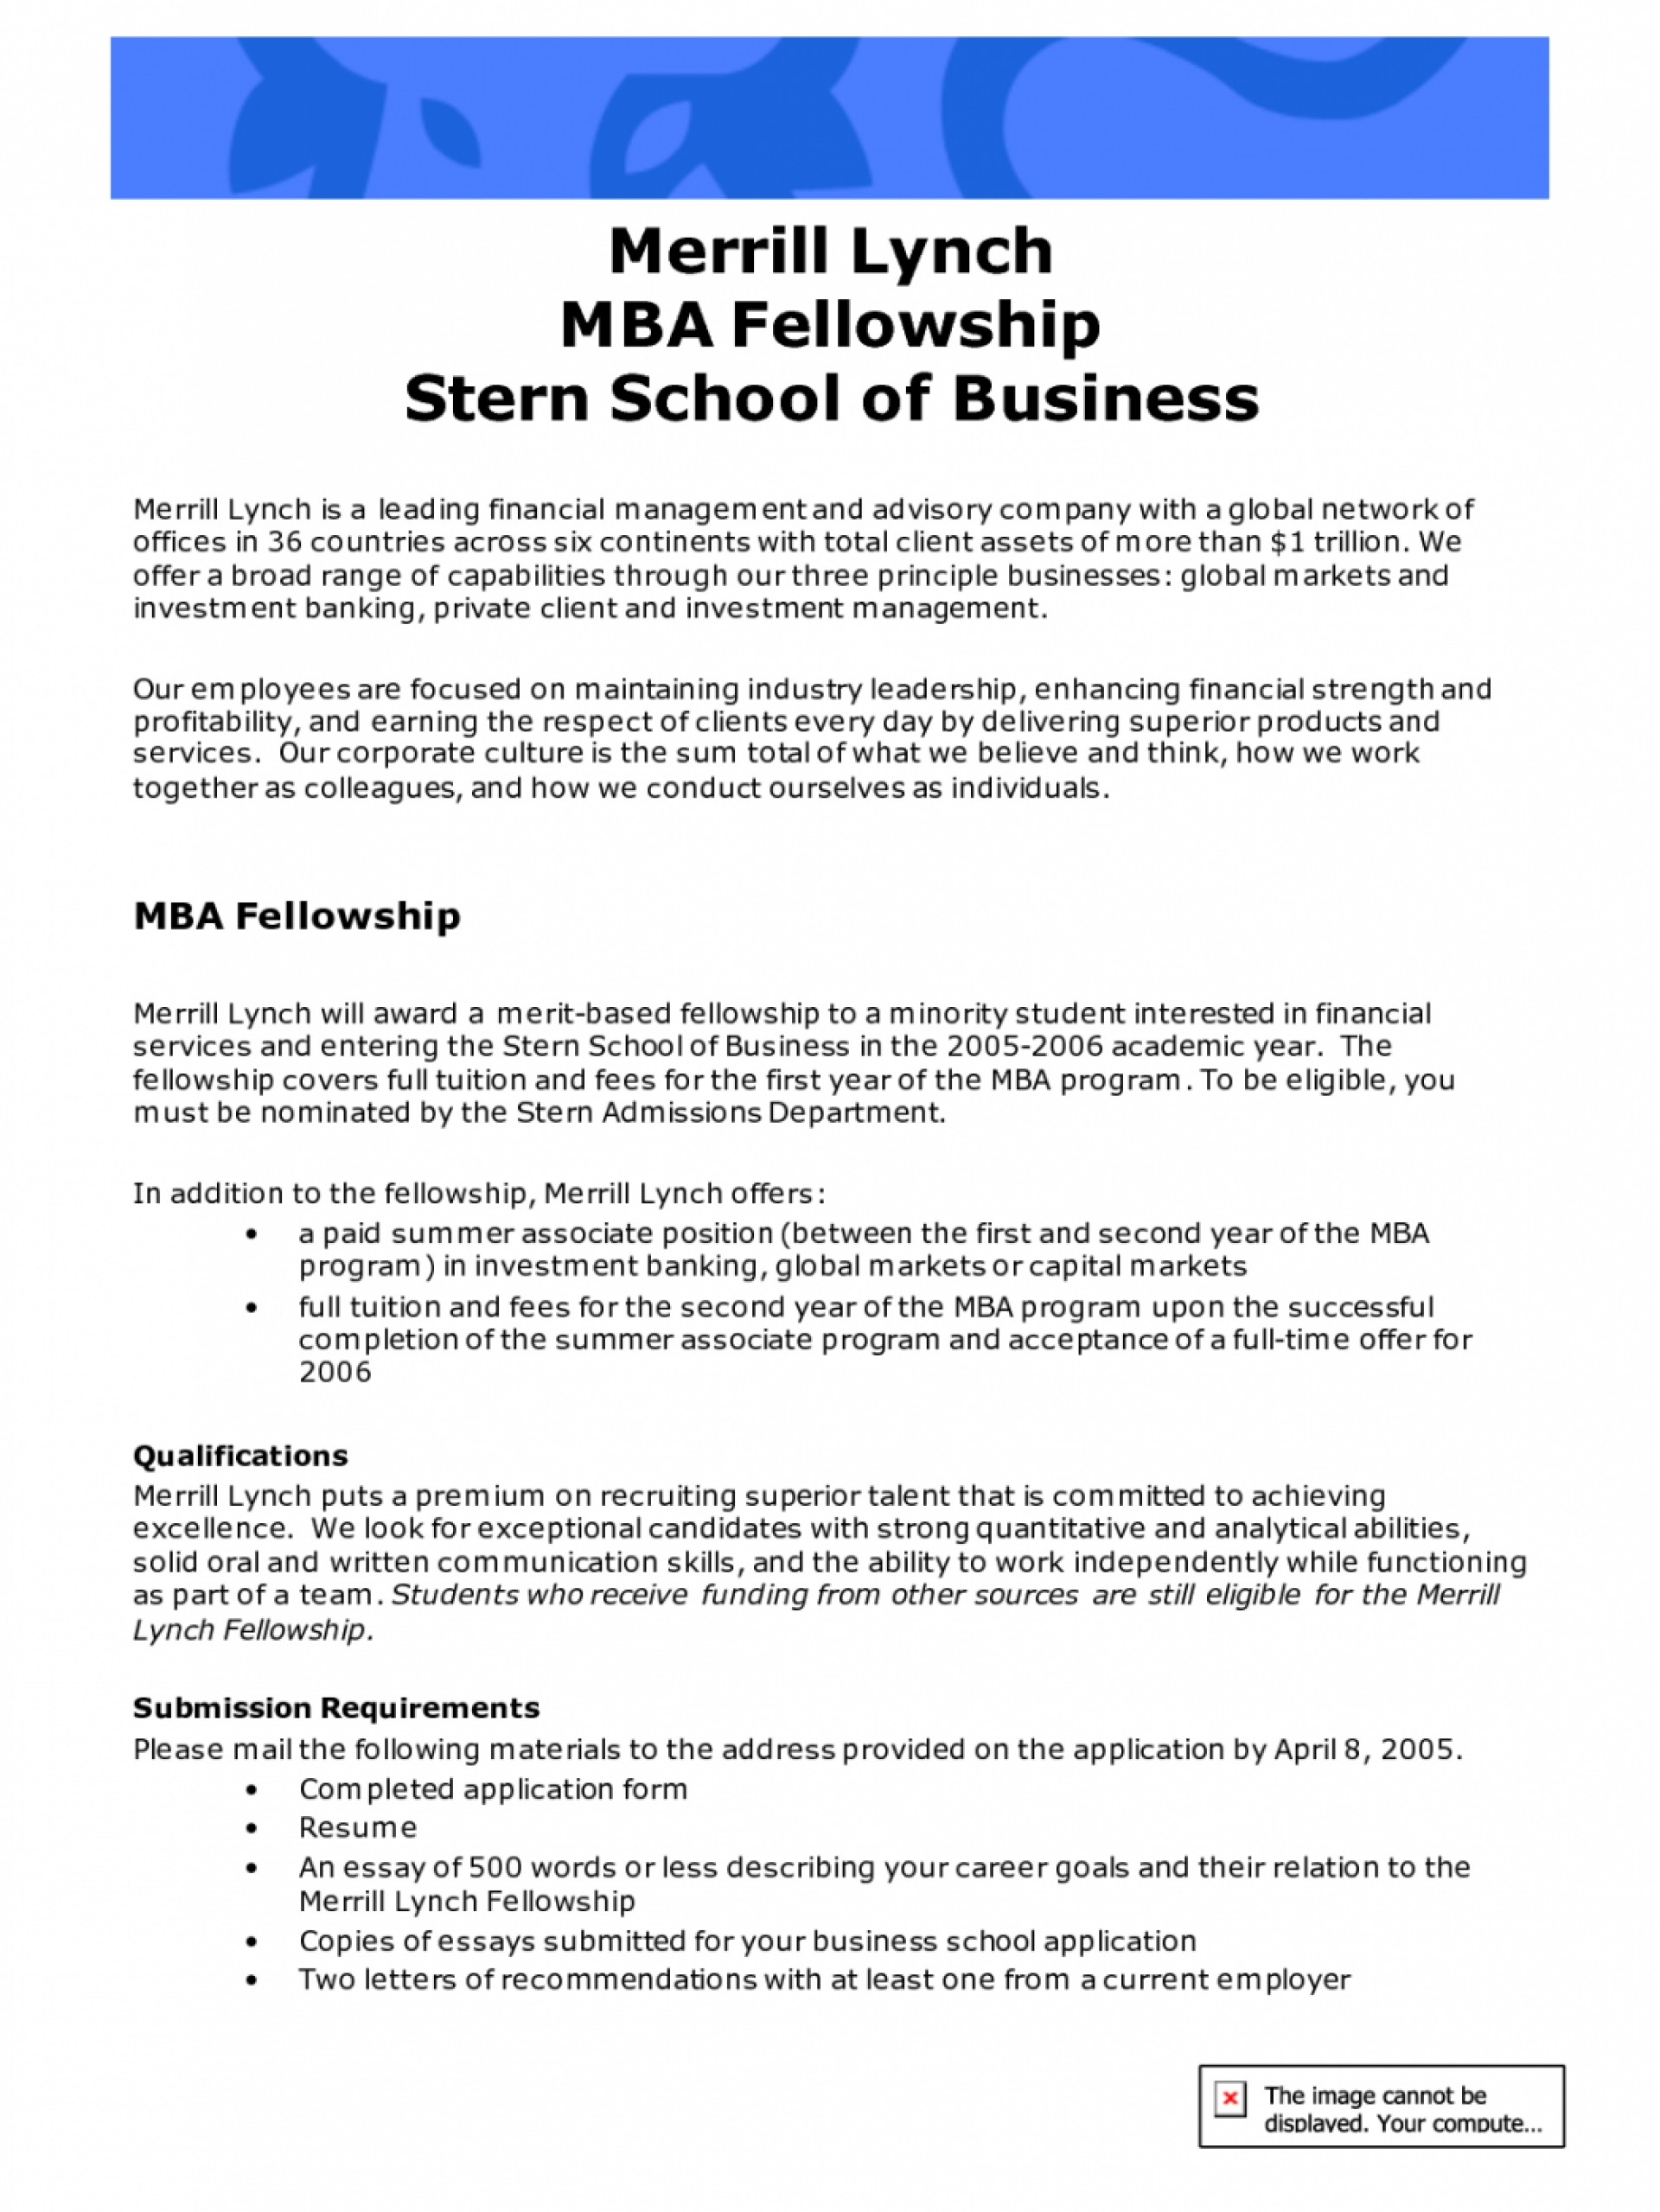 014 Career Goals Essay Short Term And Long Essays For Mba Research Paper Service Sample 4s 1048x1397 Fantastic Business Examples Scholarship Pdf 1920